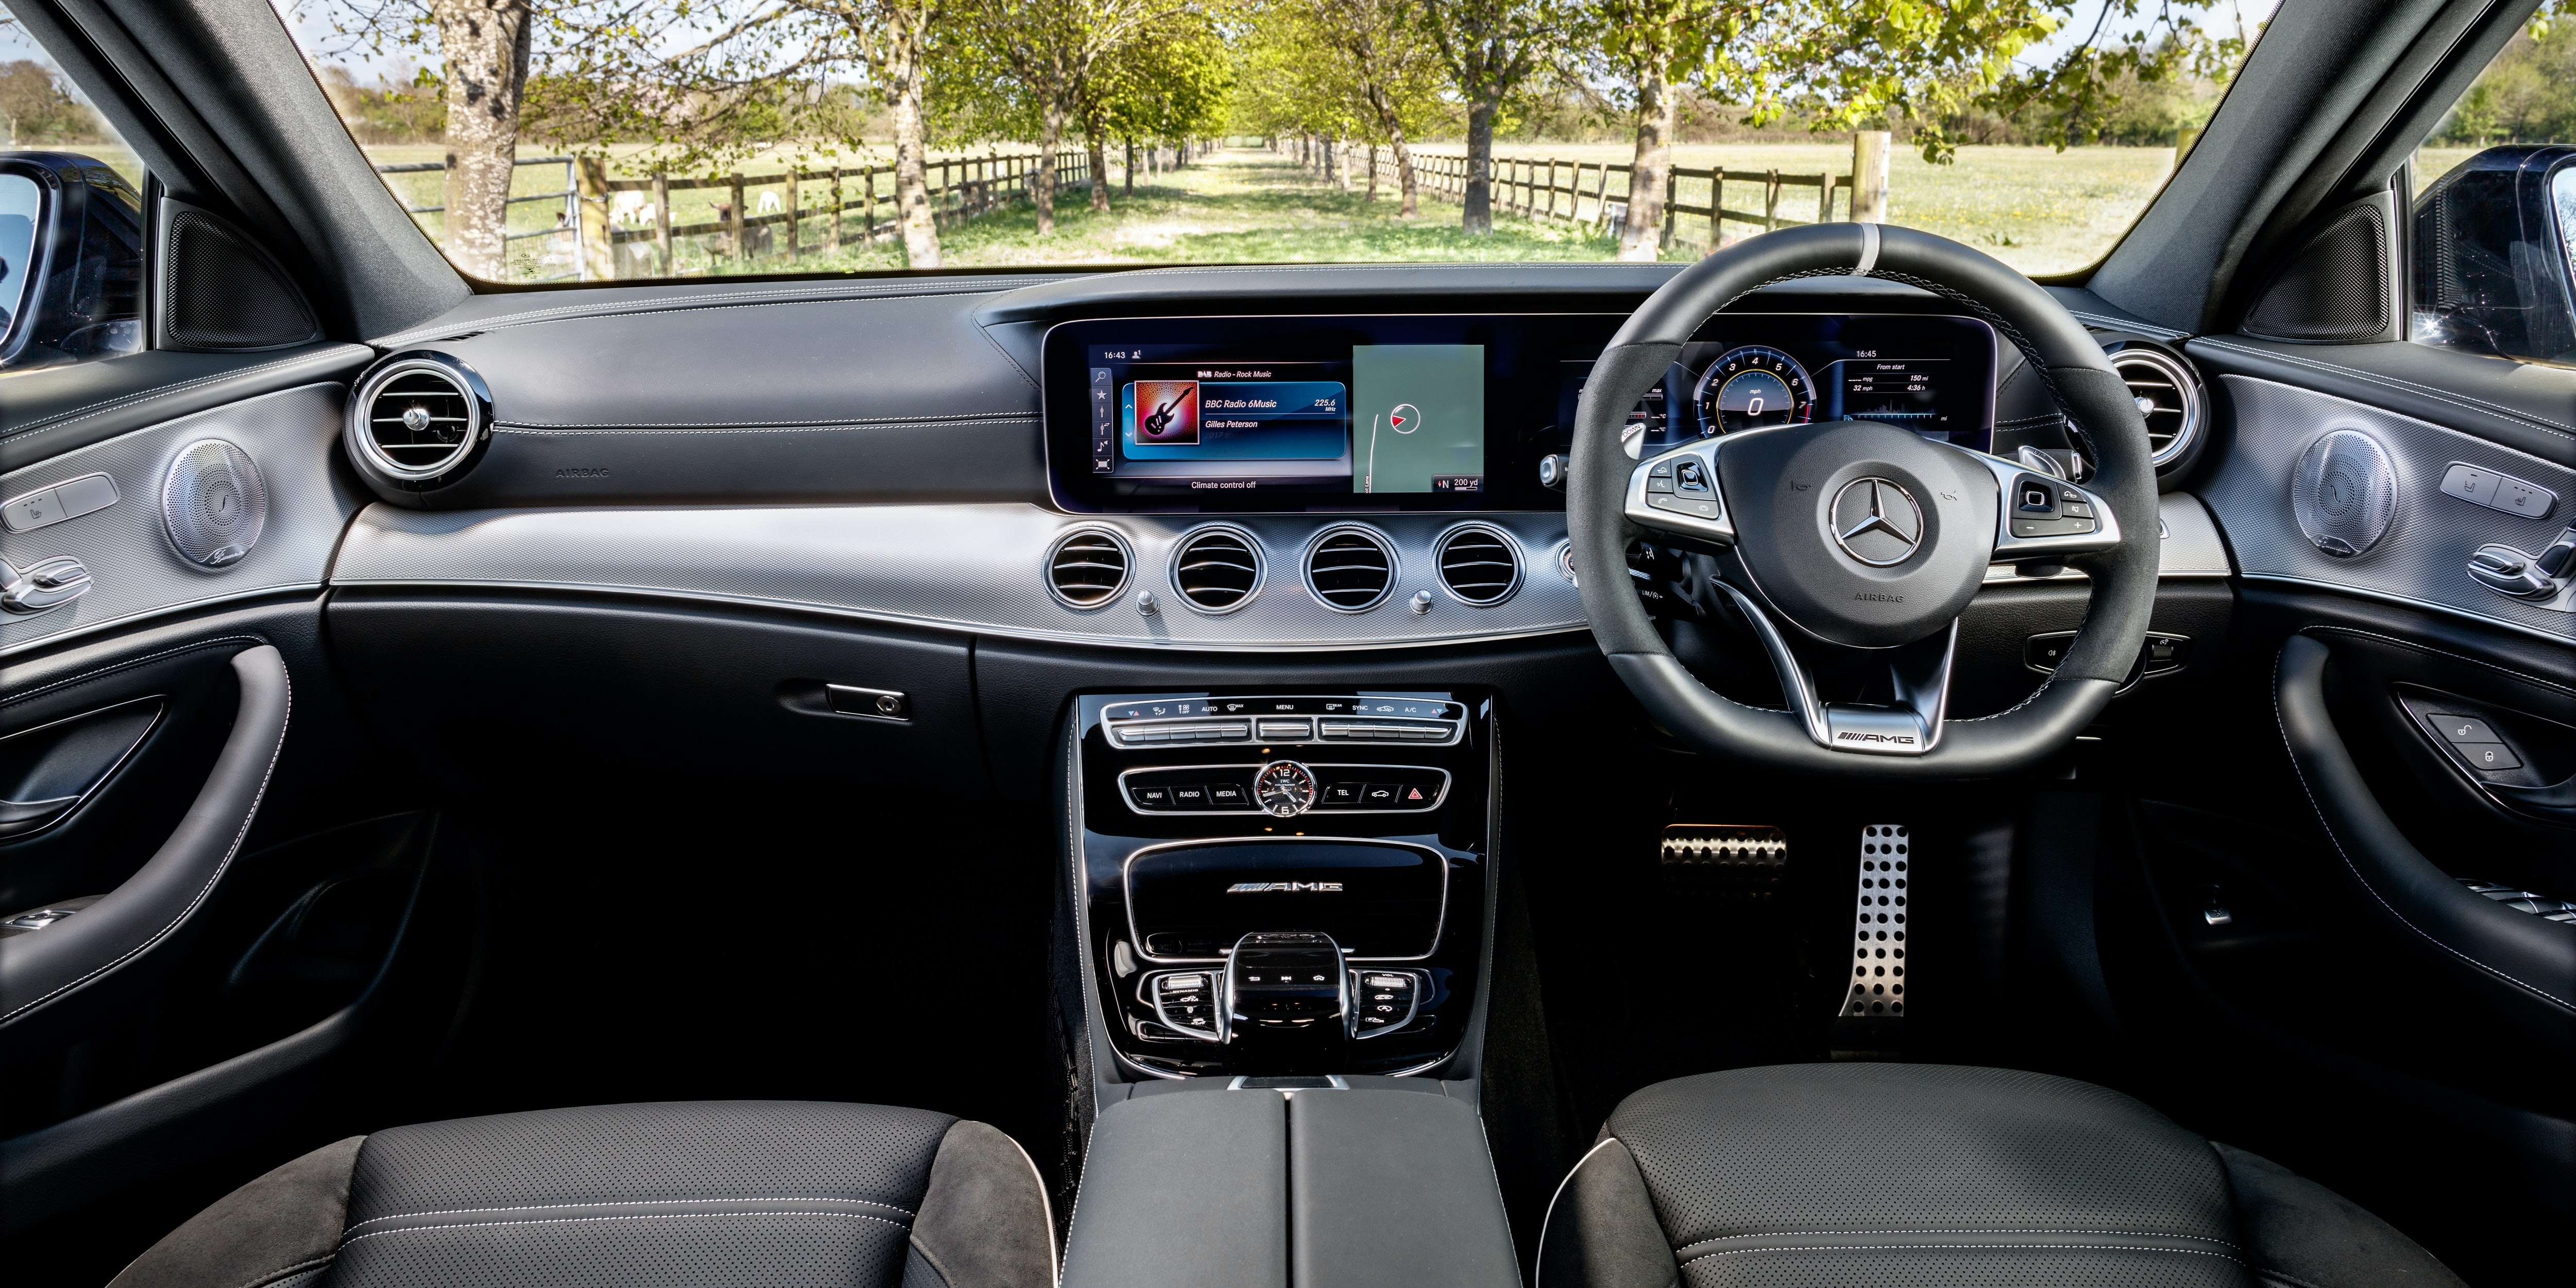 The E63 takes the E-Class's luxurious dash to the next level with some sporty touches, such as the flat-bottomed steering wheel